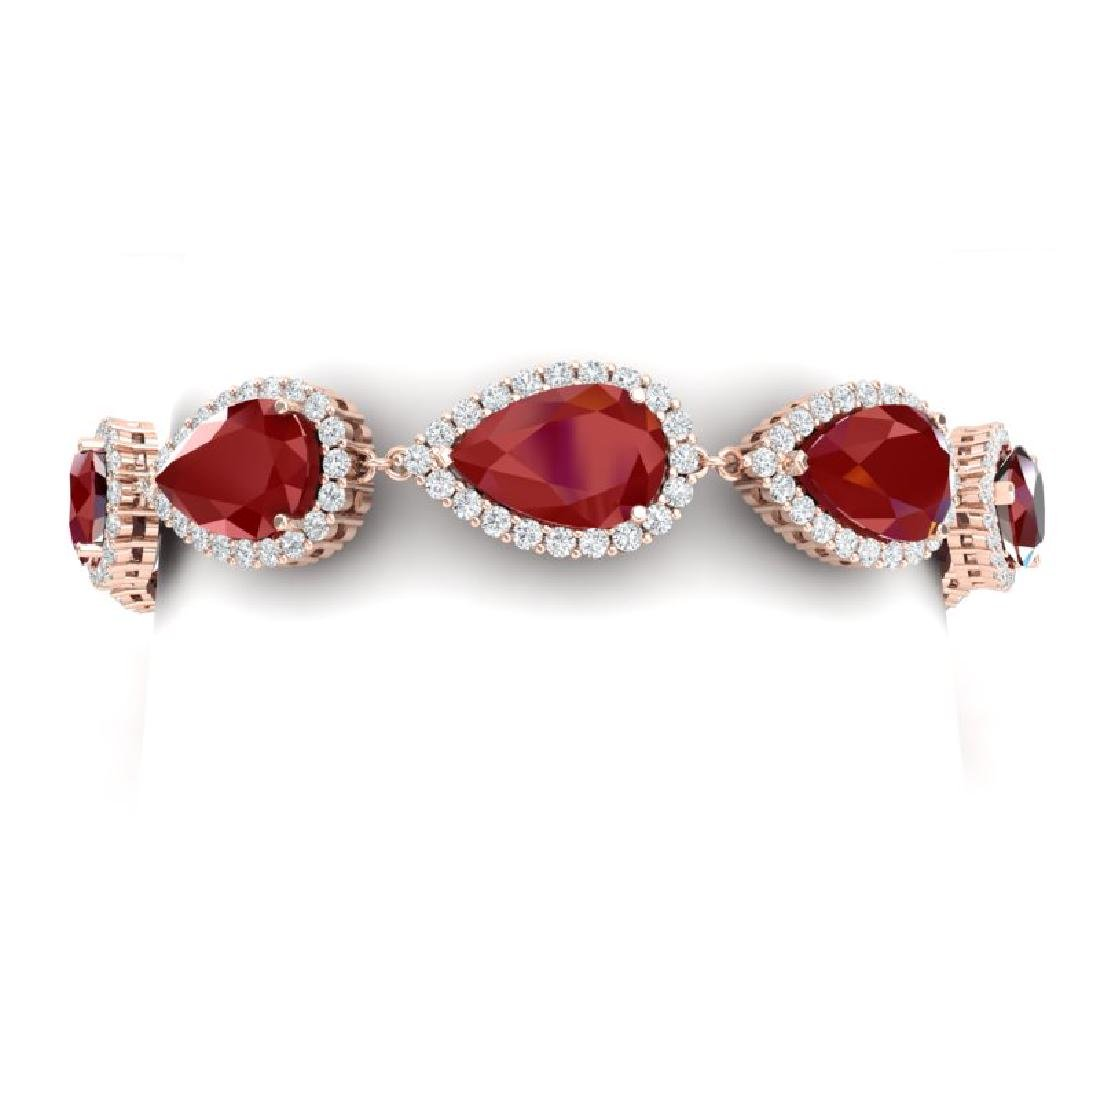 42 CTW Royalty Designer Ruby & VS Diamond Bracelet 18K